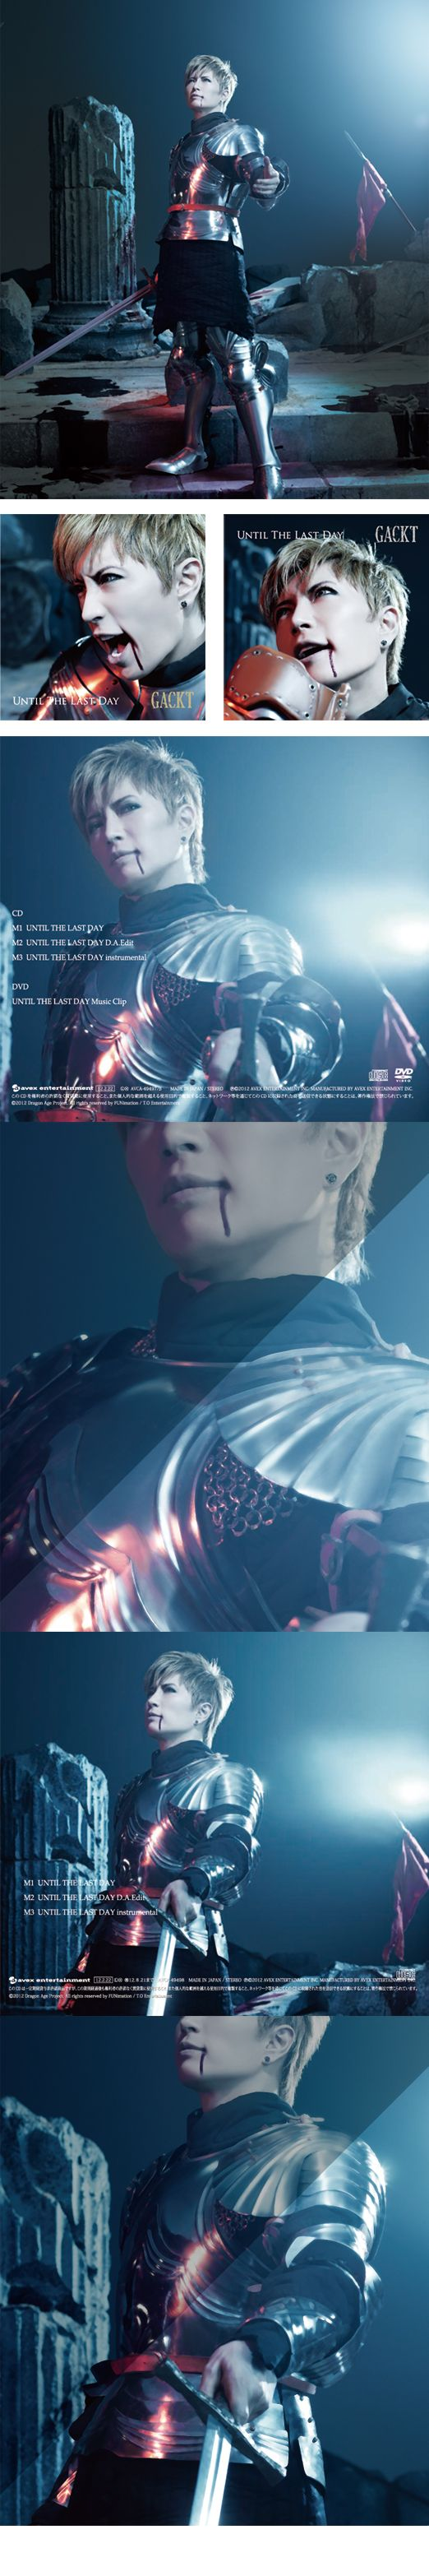 GACKT / Until the Last Day   ~photo by CANNO ★CANNO'S WORKS  CAPS=CANNO PHOTO STUDIO http://capsphoto.jimdo.com/